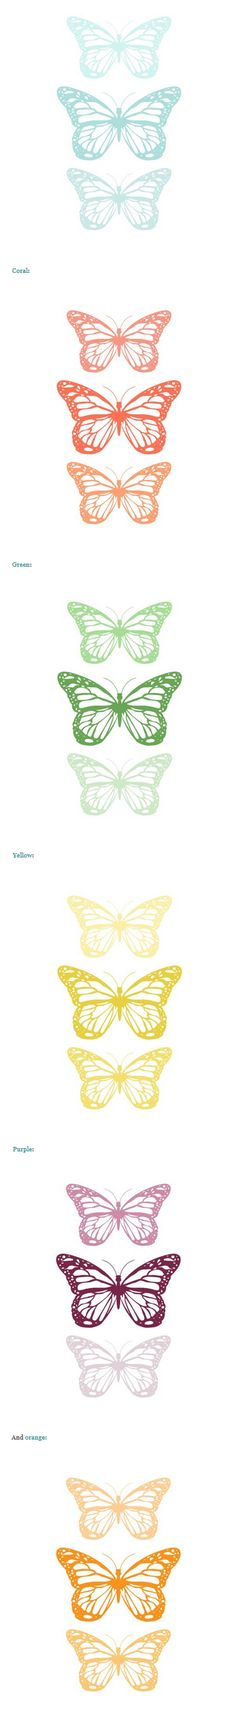 free printable butterflies // our humble abode.